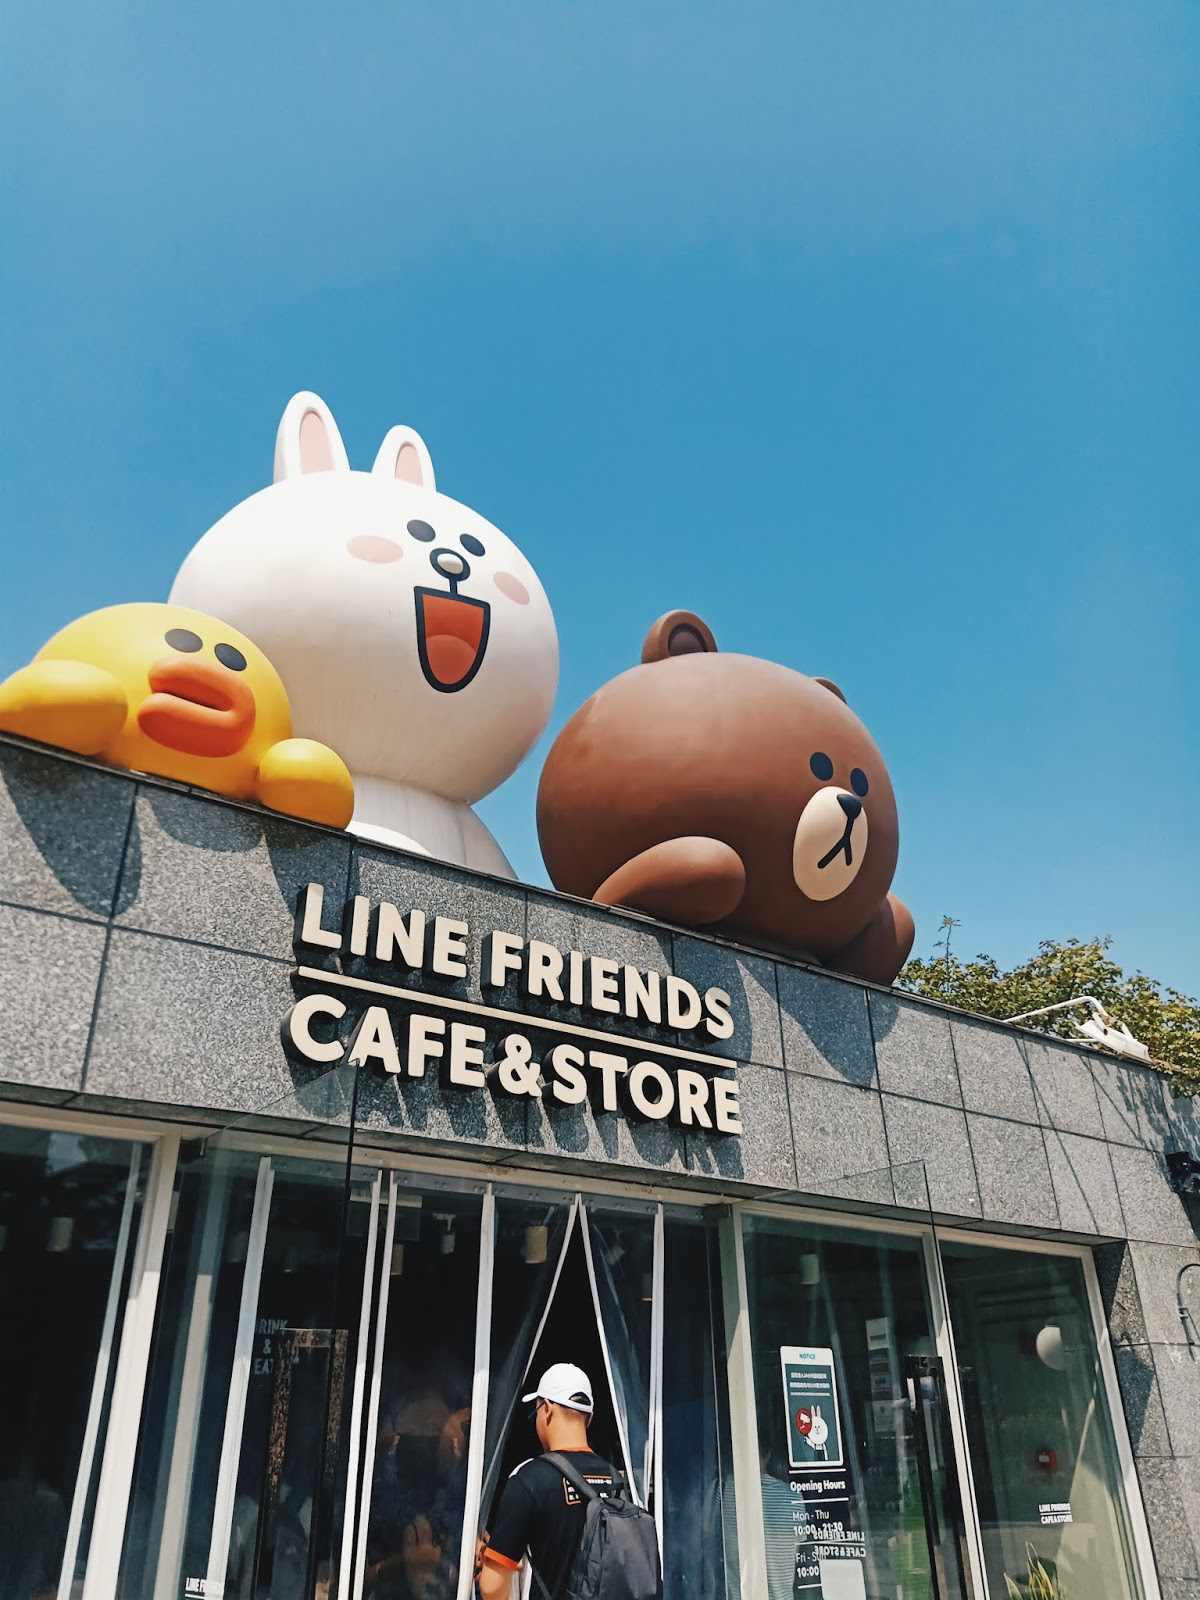 Line Cafe, Nanjing - rsjournal